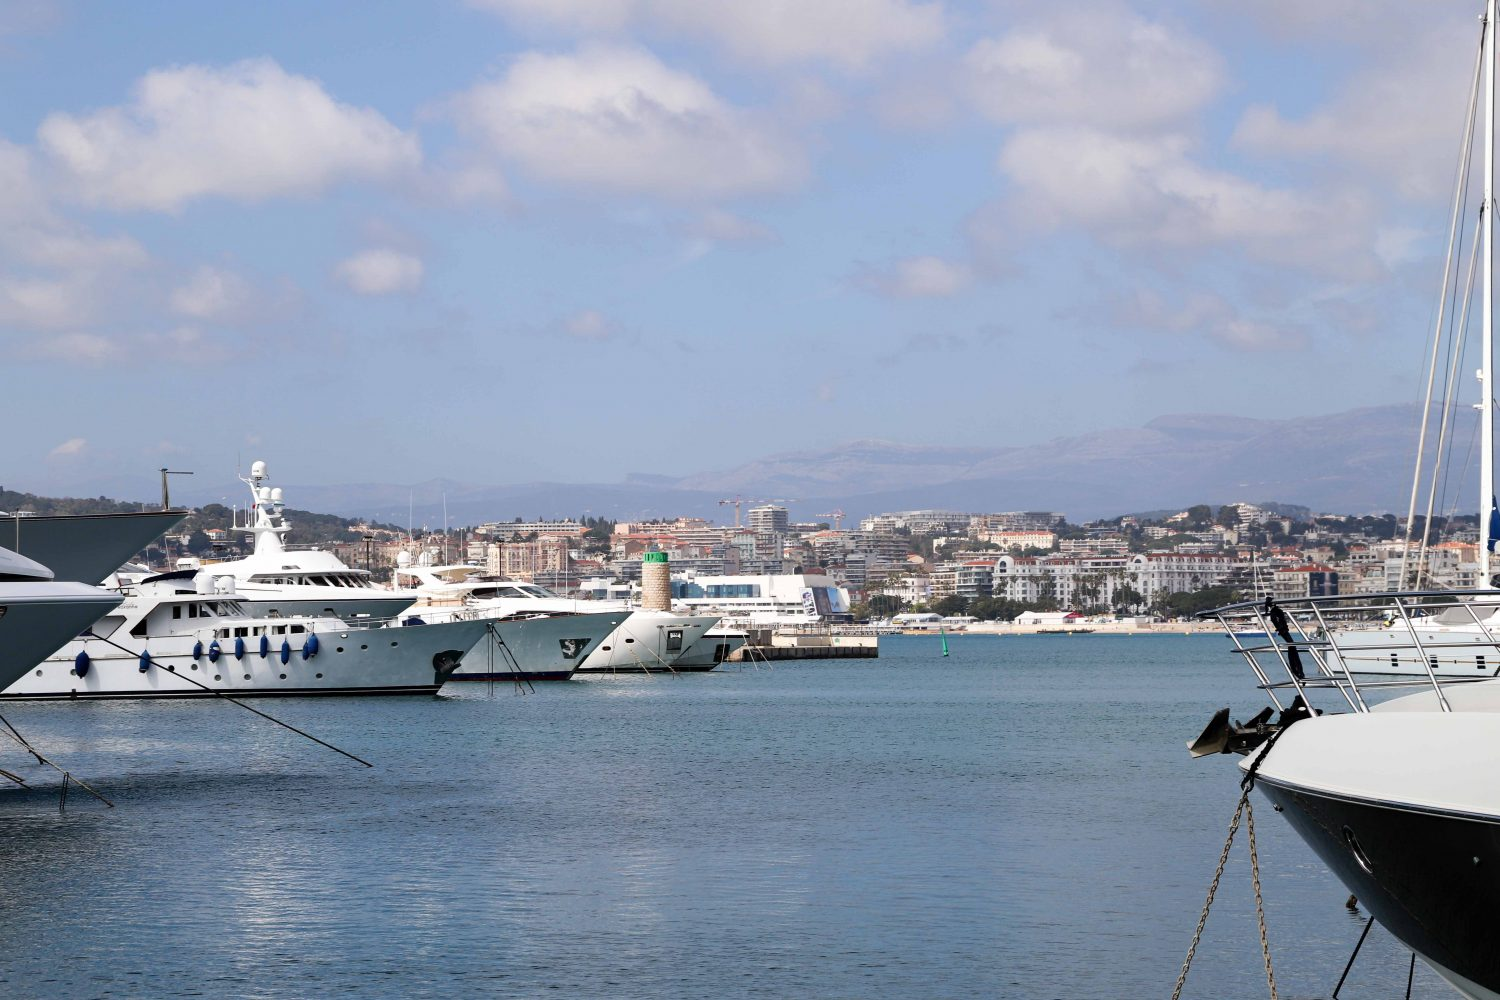 Port canto cannes, France